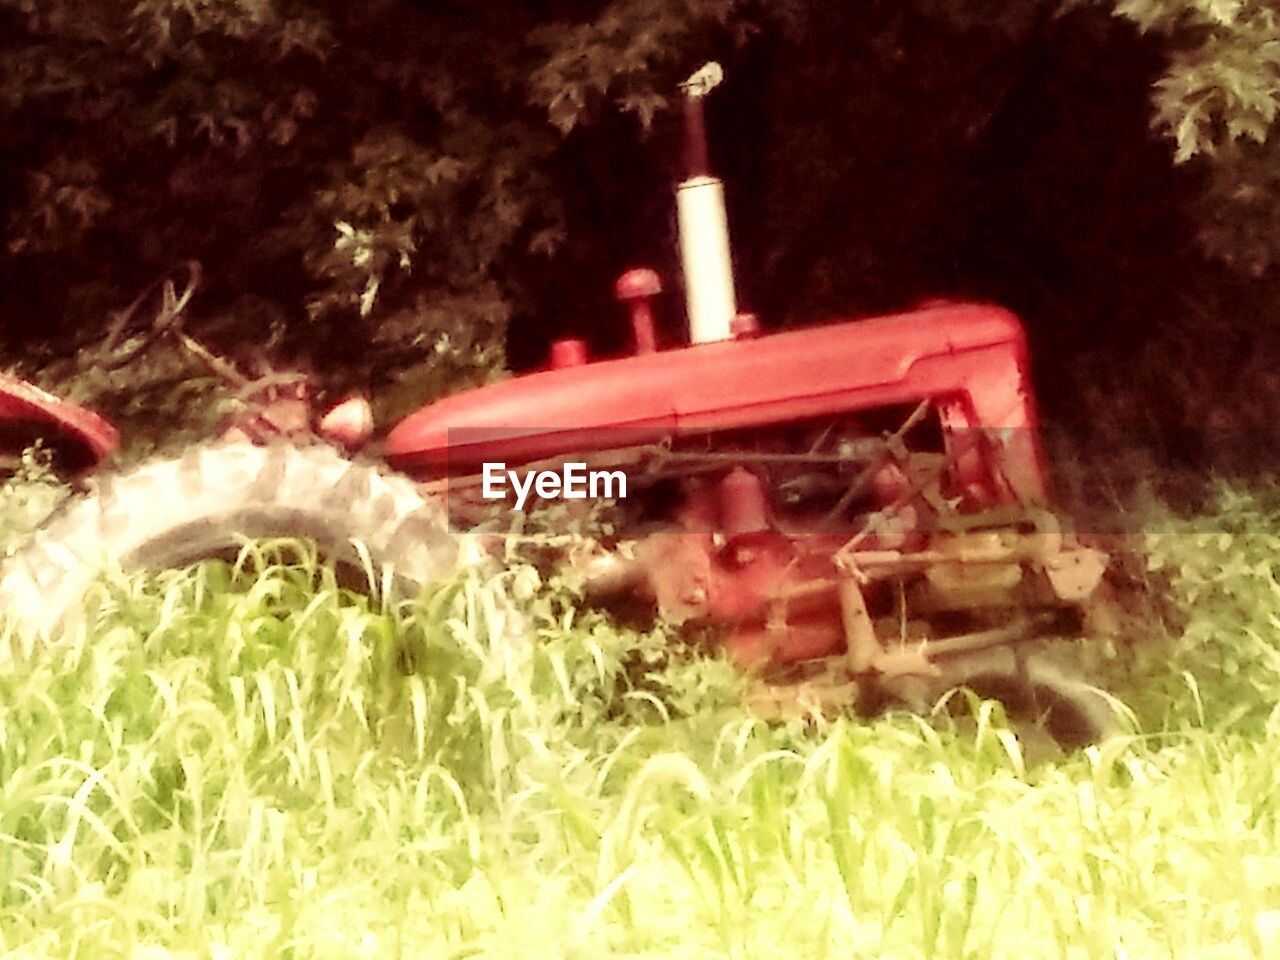 grass, no people, field, plant, machinery, close-up, nature, outdoors, day, combine harvester